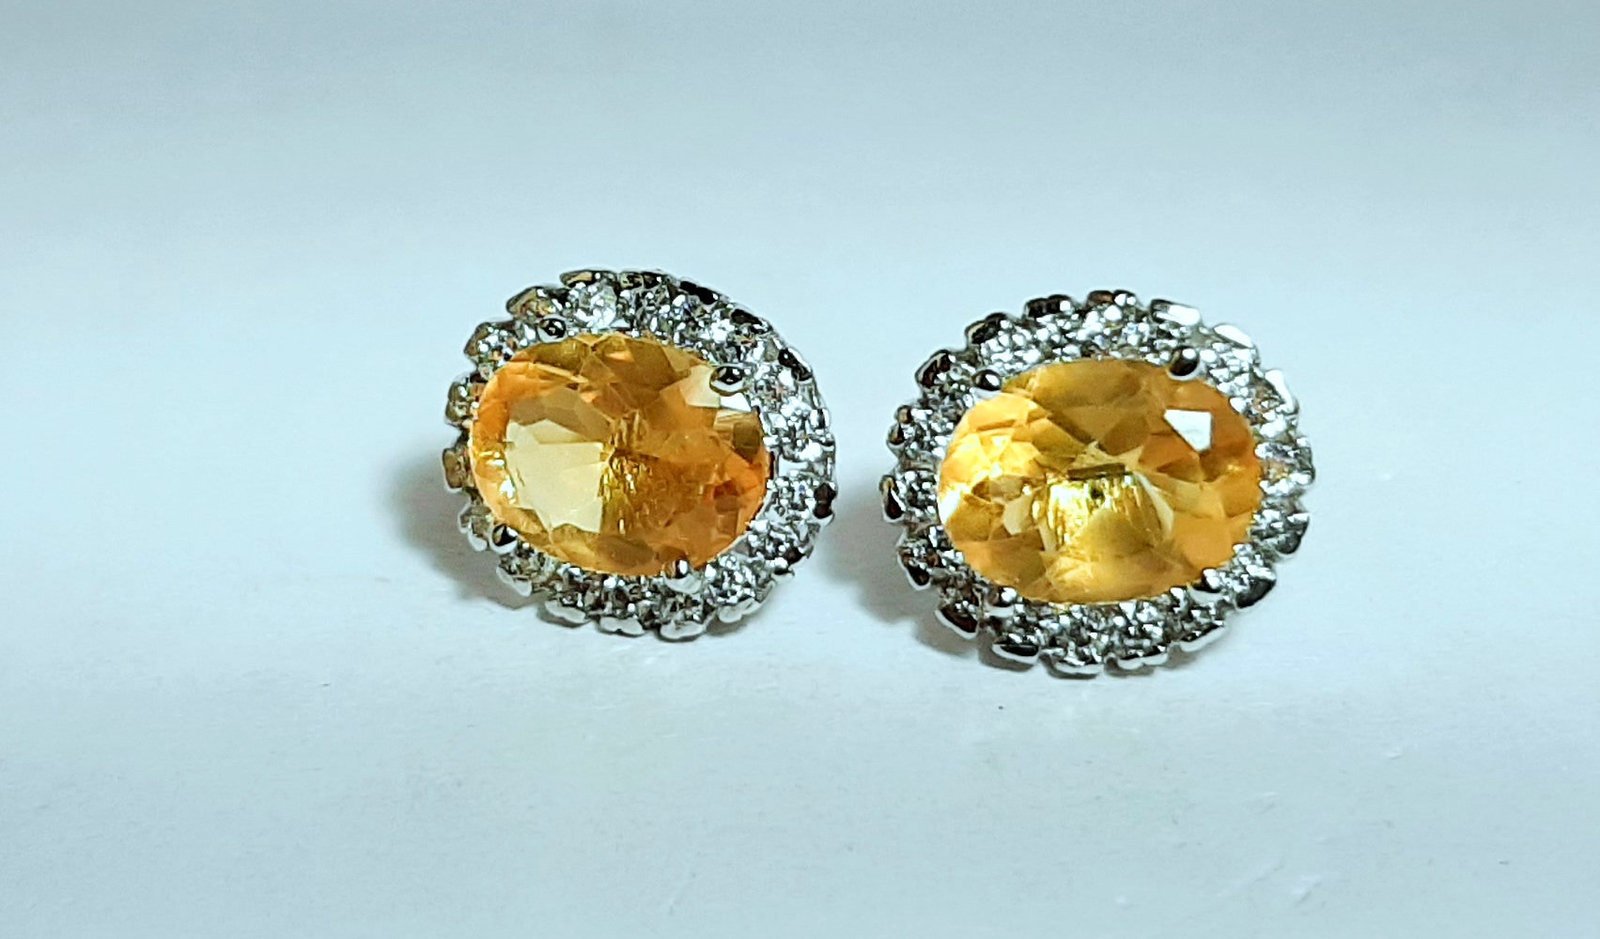 925 Sterling Silver Natural A+ Quality Citrine And Cz Gemstone Handcrafted Desig image 5